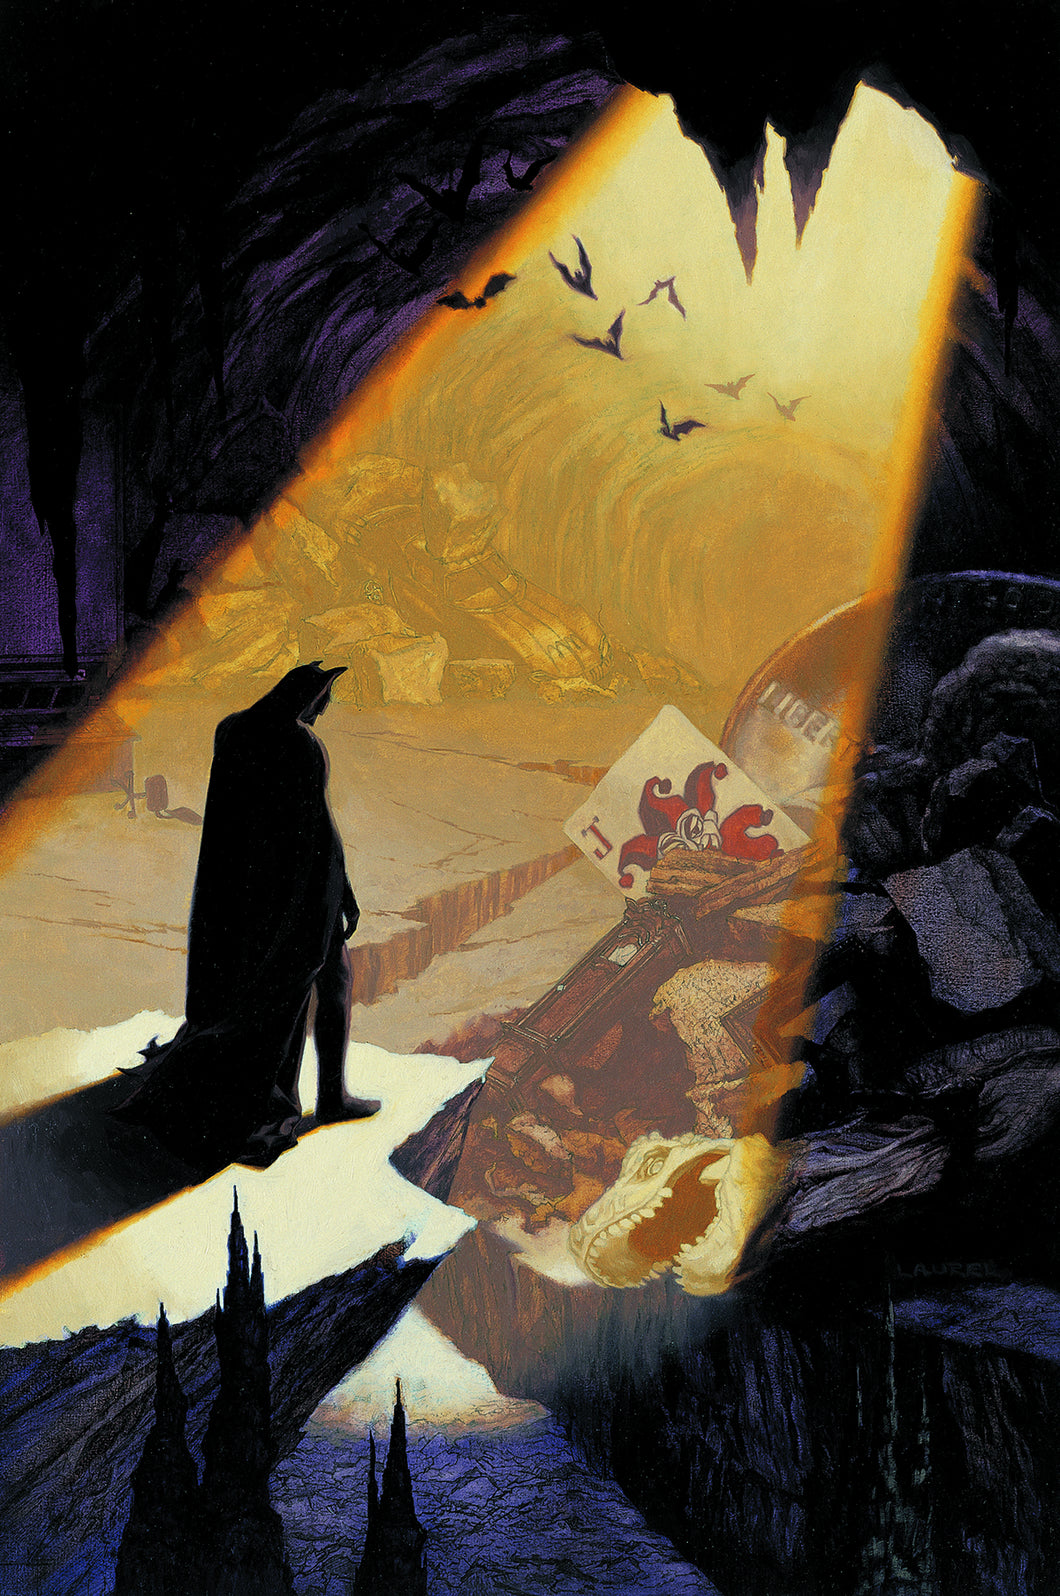 Batman stands in a rift of light in his crumbled Batcave.